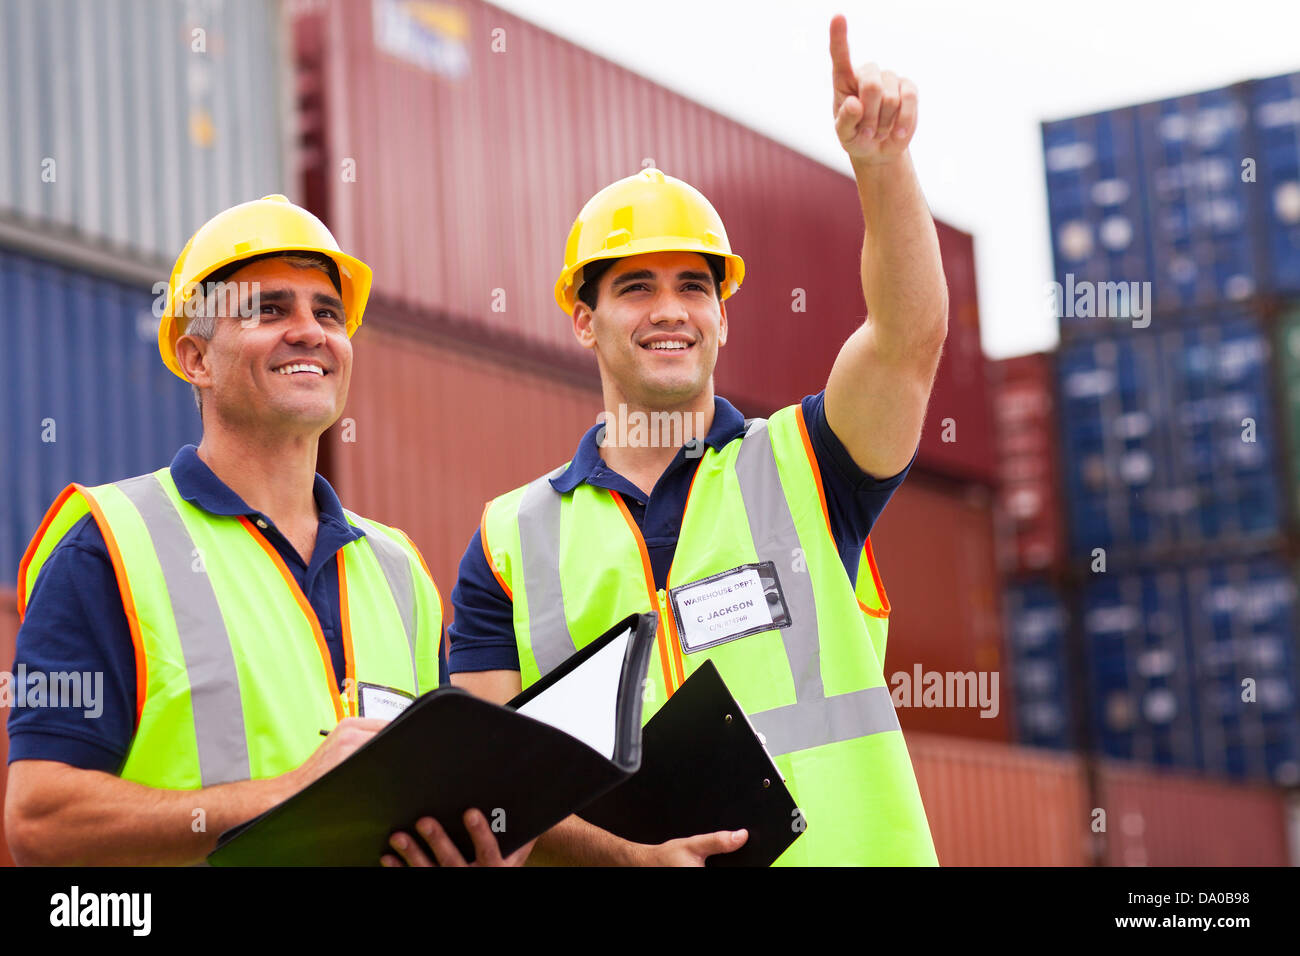 two inspectors doing inspection at the harbor container yard - Stock Image